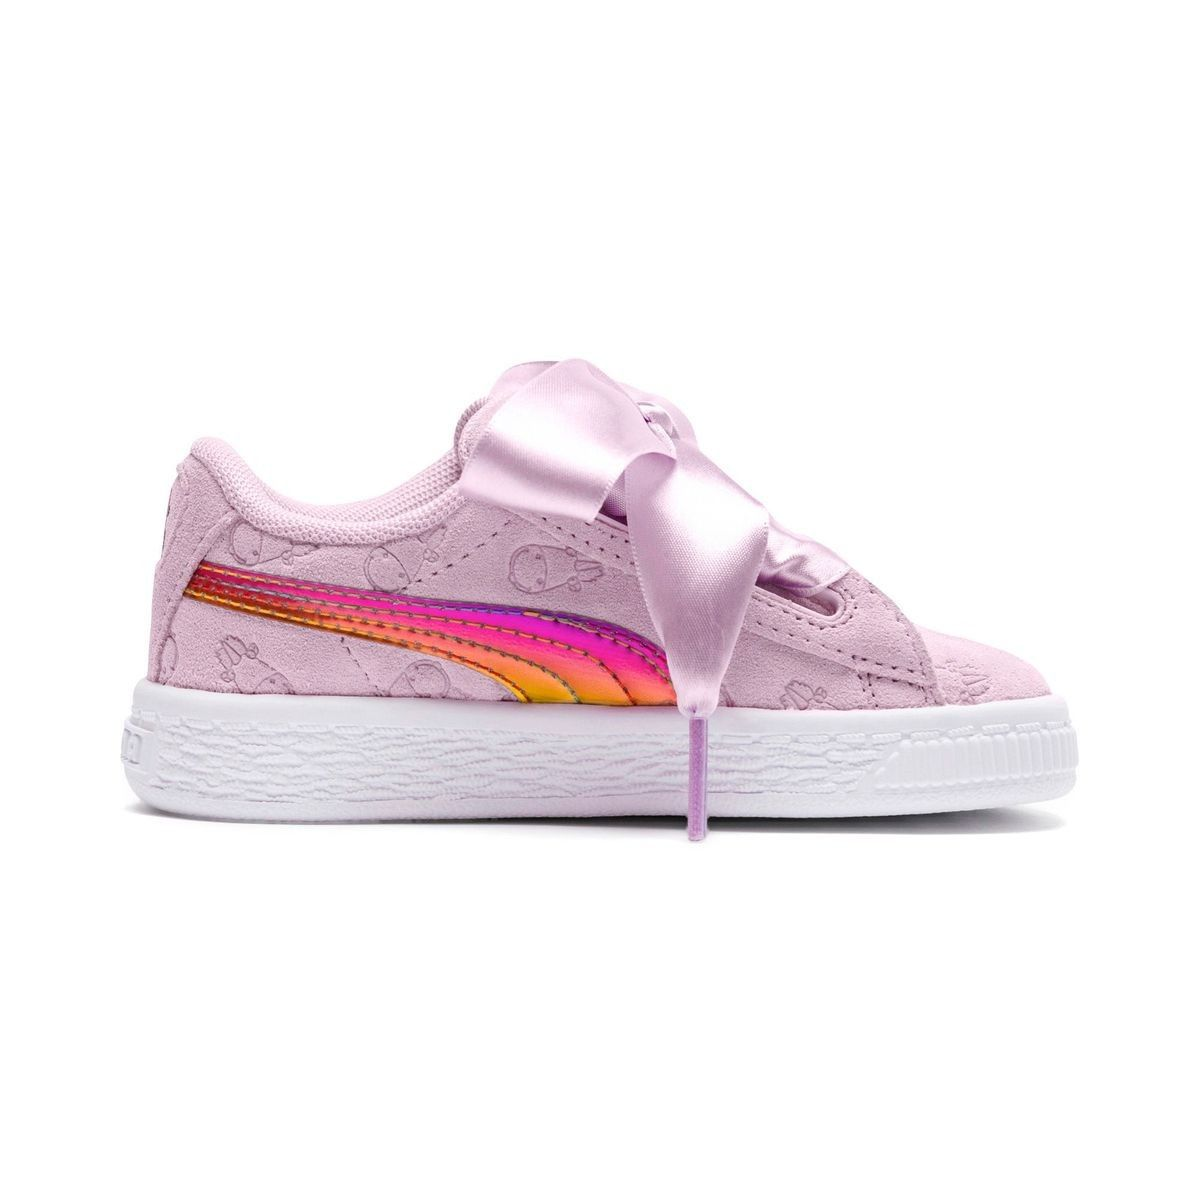 Basket puma fille taille 27